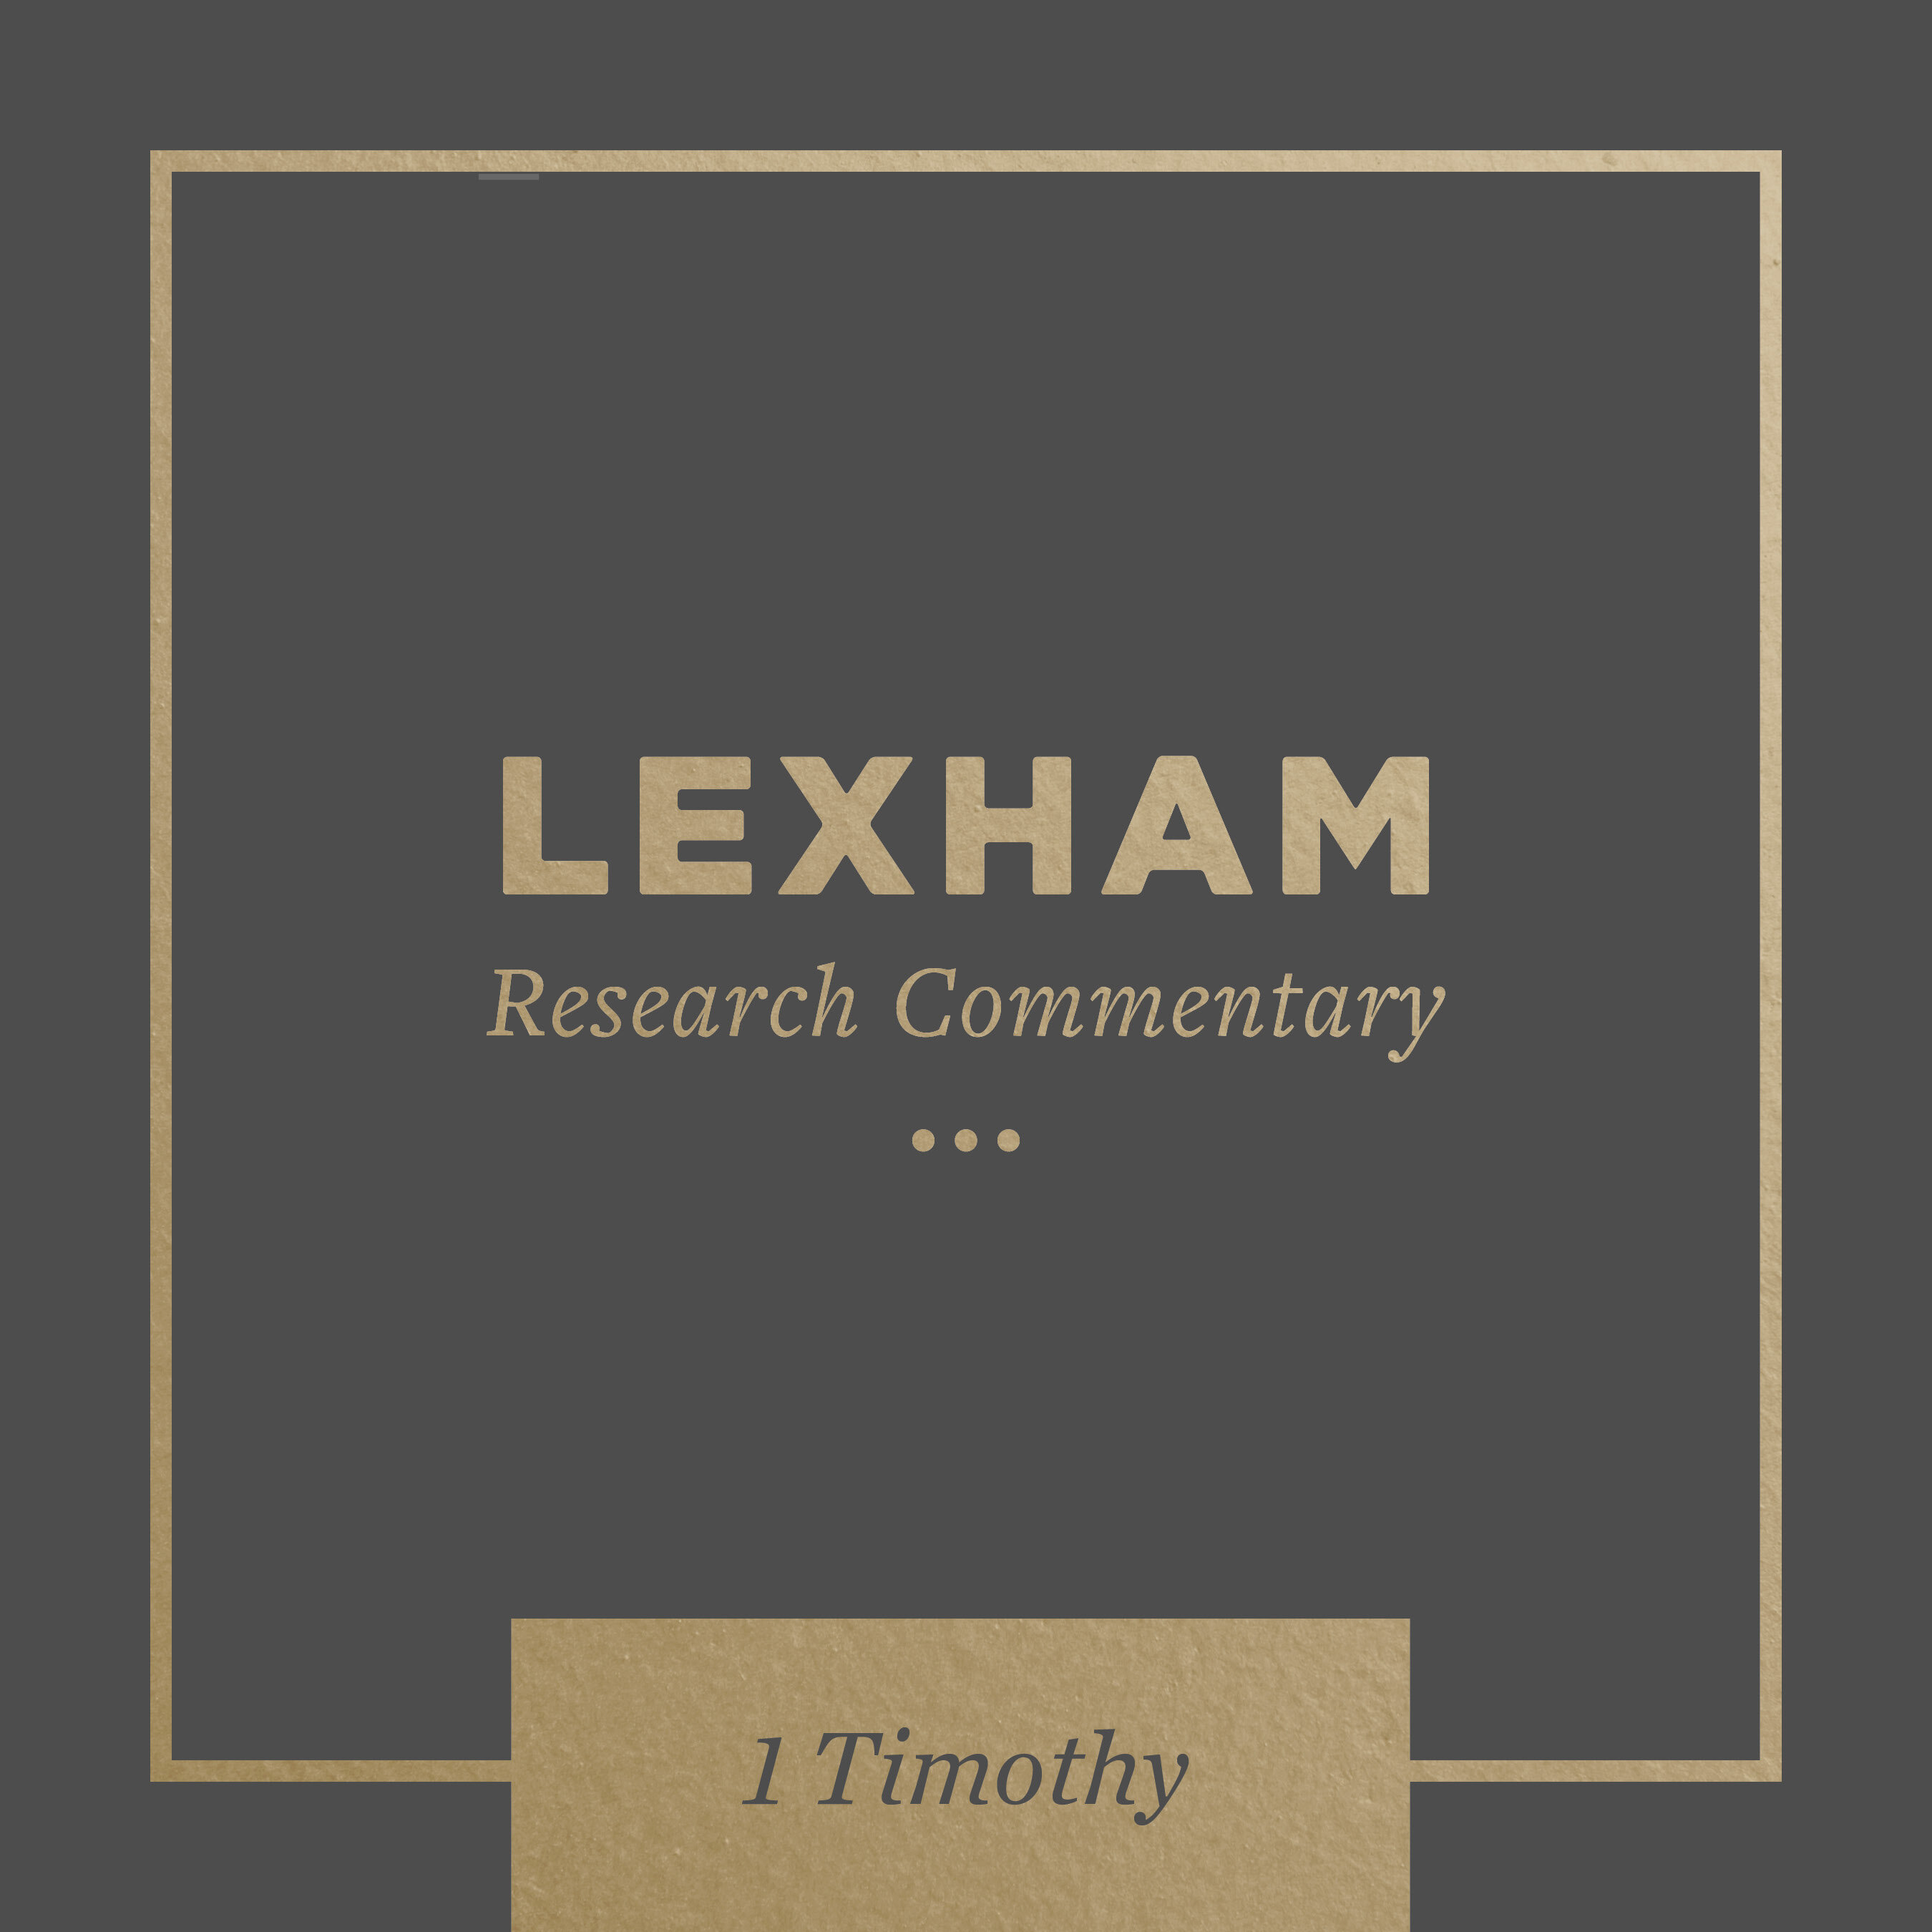 Lexham Research Commentary: 1 Timothy